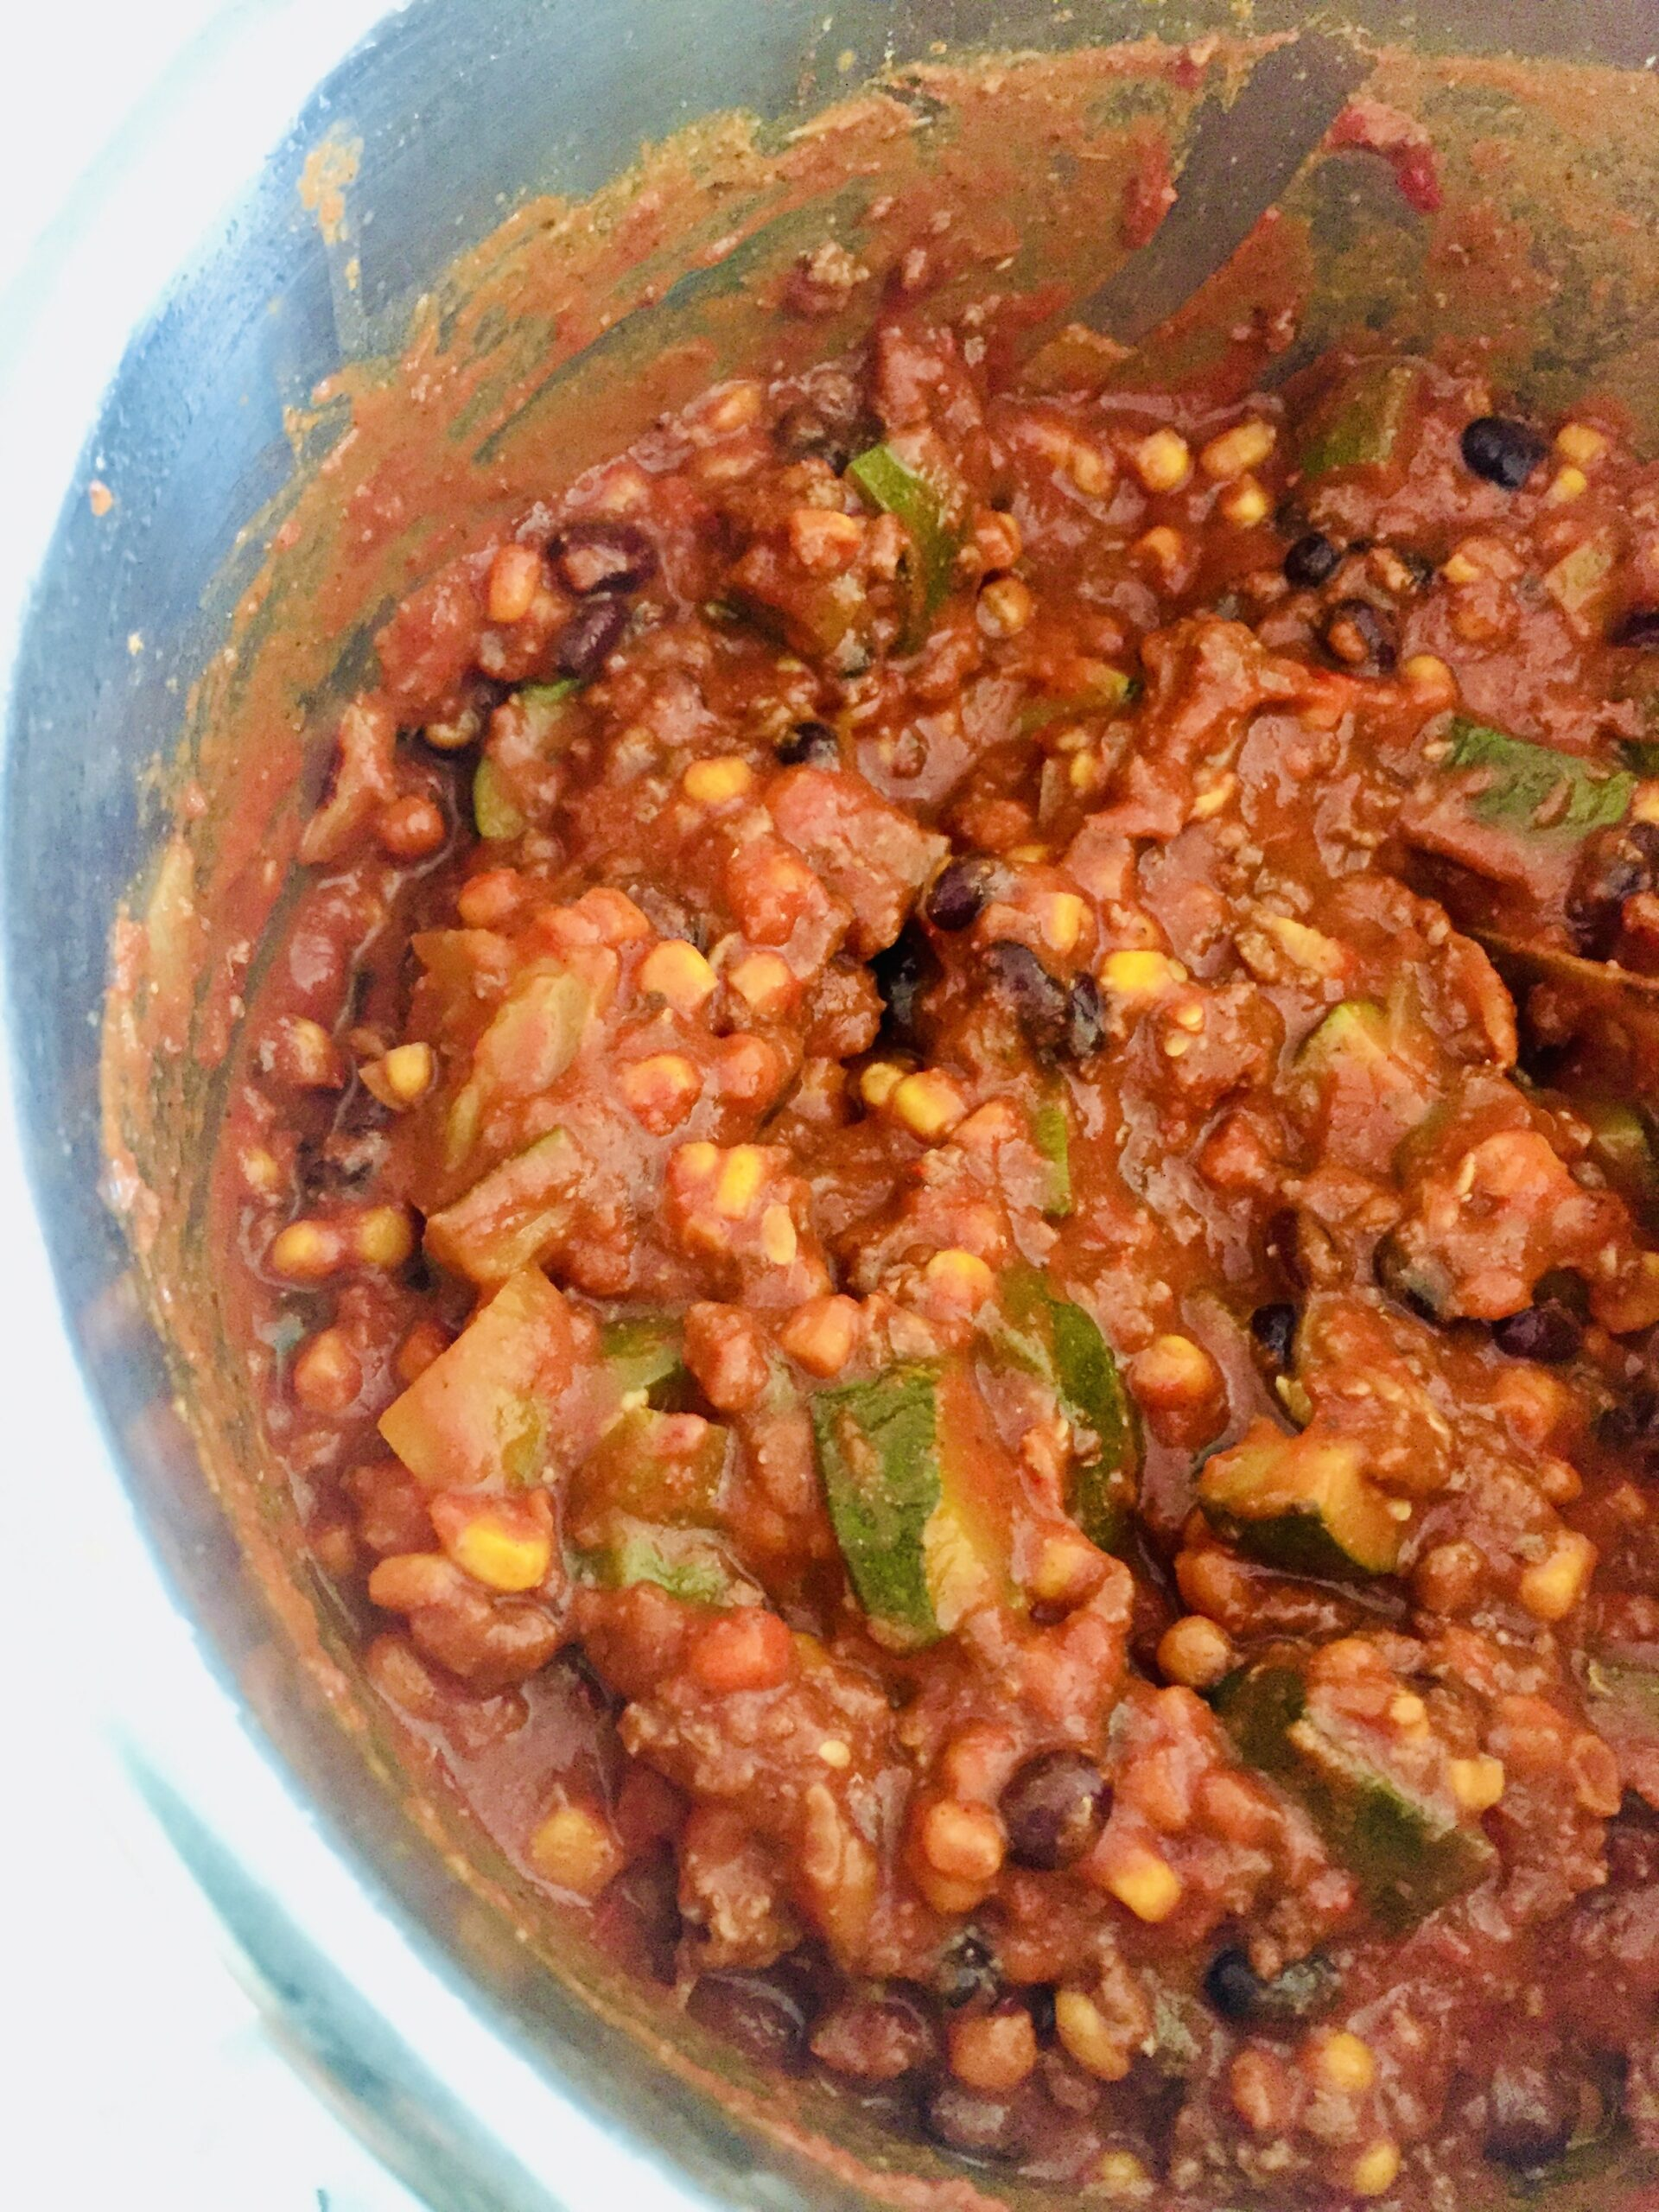 chili with beef, beans, and vegetables